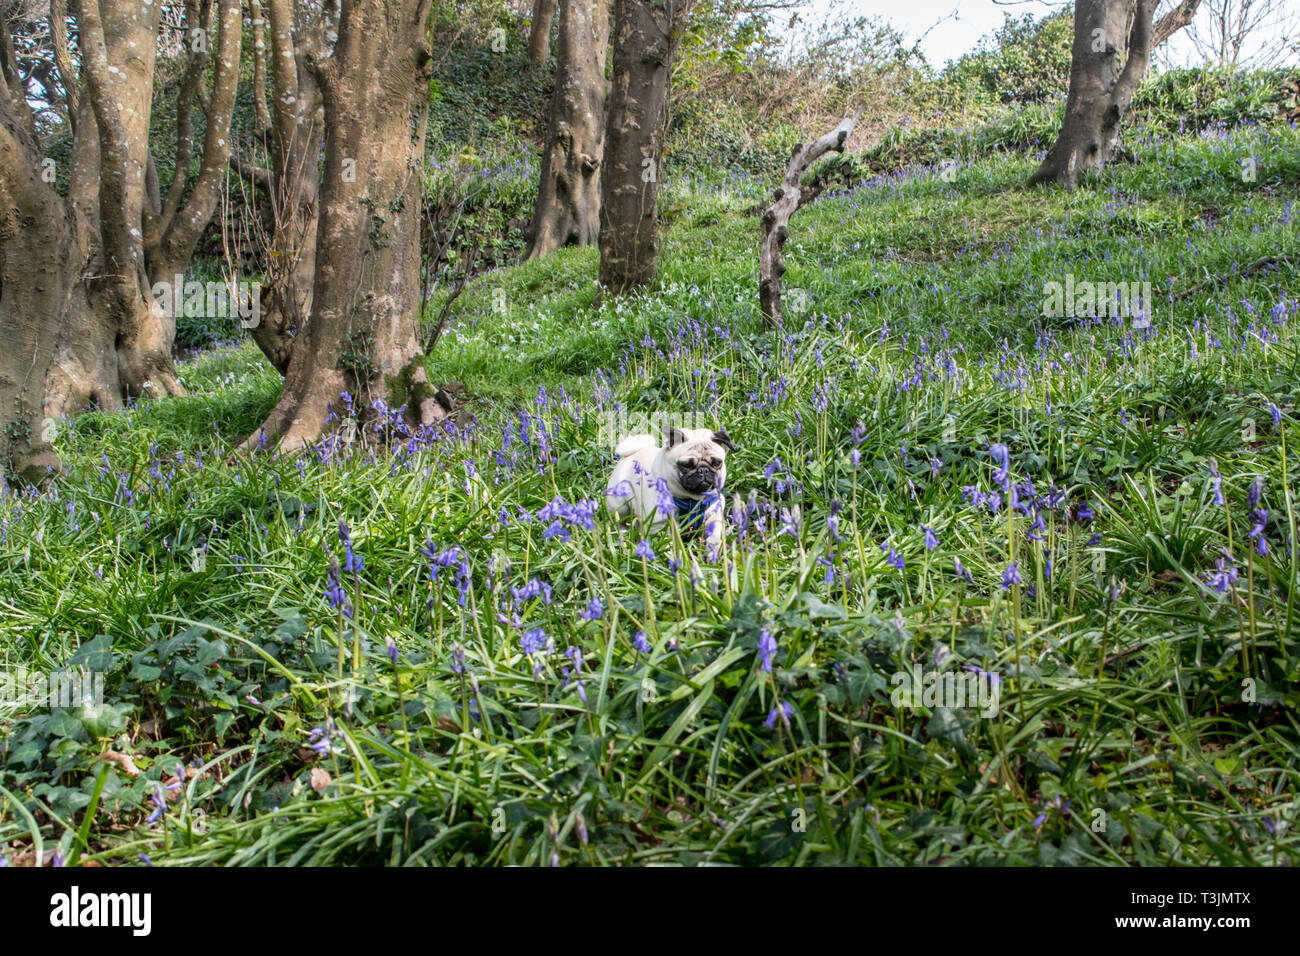 Newlyn, Cornwall, UK. 10th Apr, 2019. UK Weather. The mild weather has brought out the bluebells in the wood at Newlyn, on another warm, sunny day in Cornwall. Out and about this morning in the wood, was Titan the pug pup. Credit: Simon Maycock/Alamy Live News Stock Photo